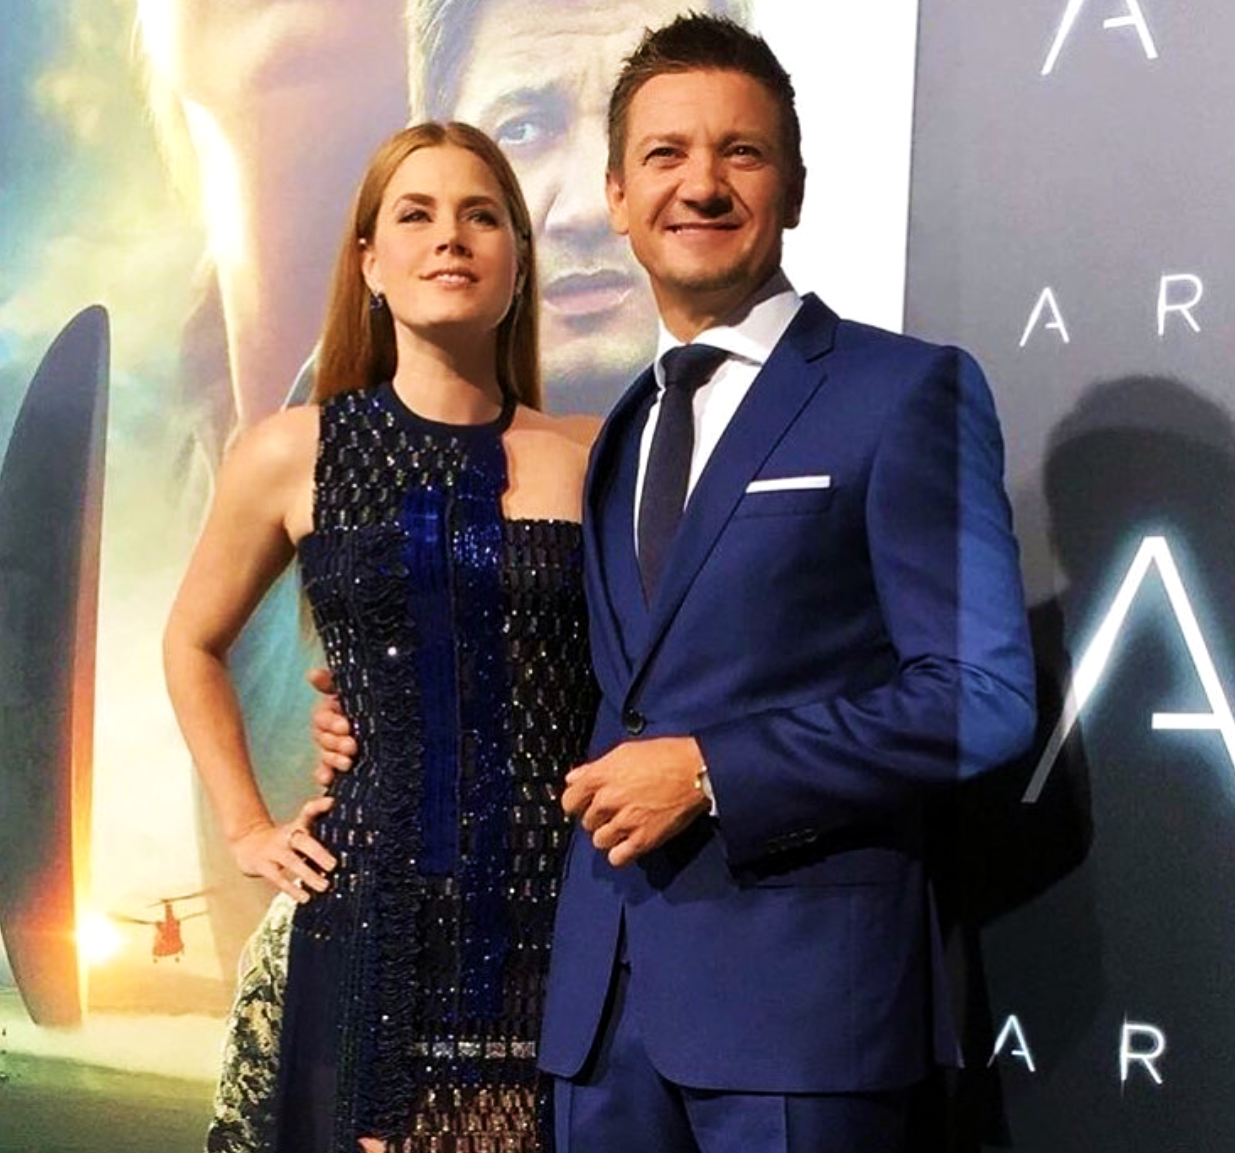 arrival-movie-premiere-amy-adams-jeremy-renner-la